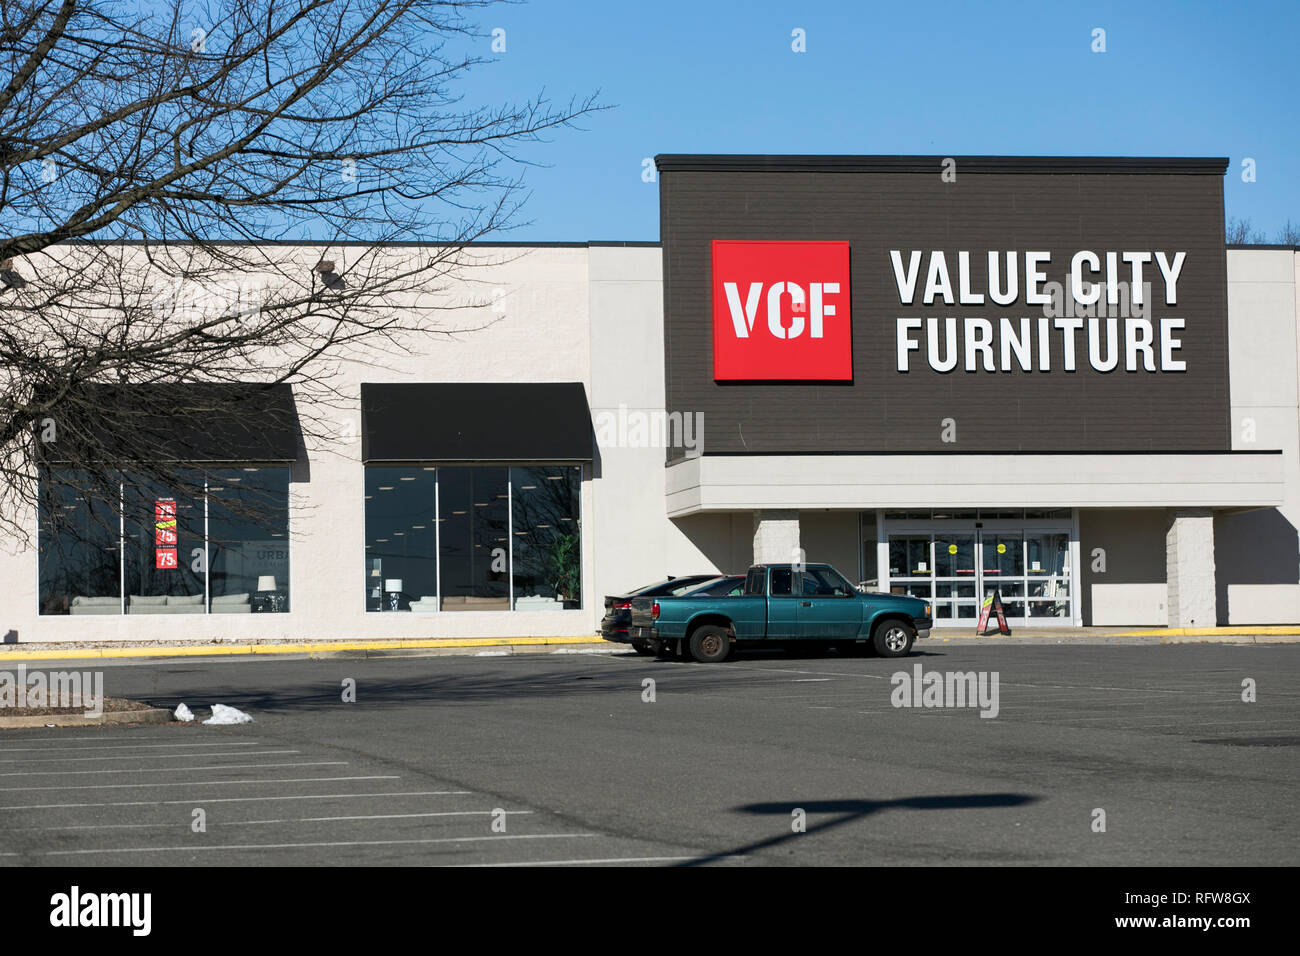 Value City Furniture High Resolution Stock Photography and Images